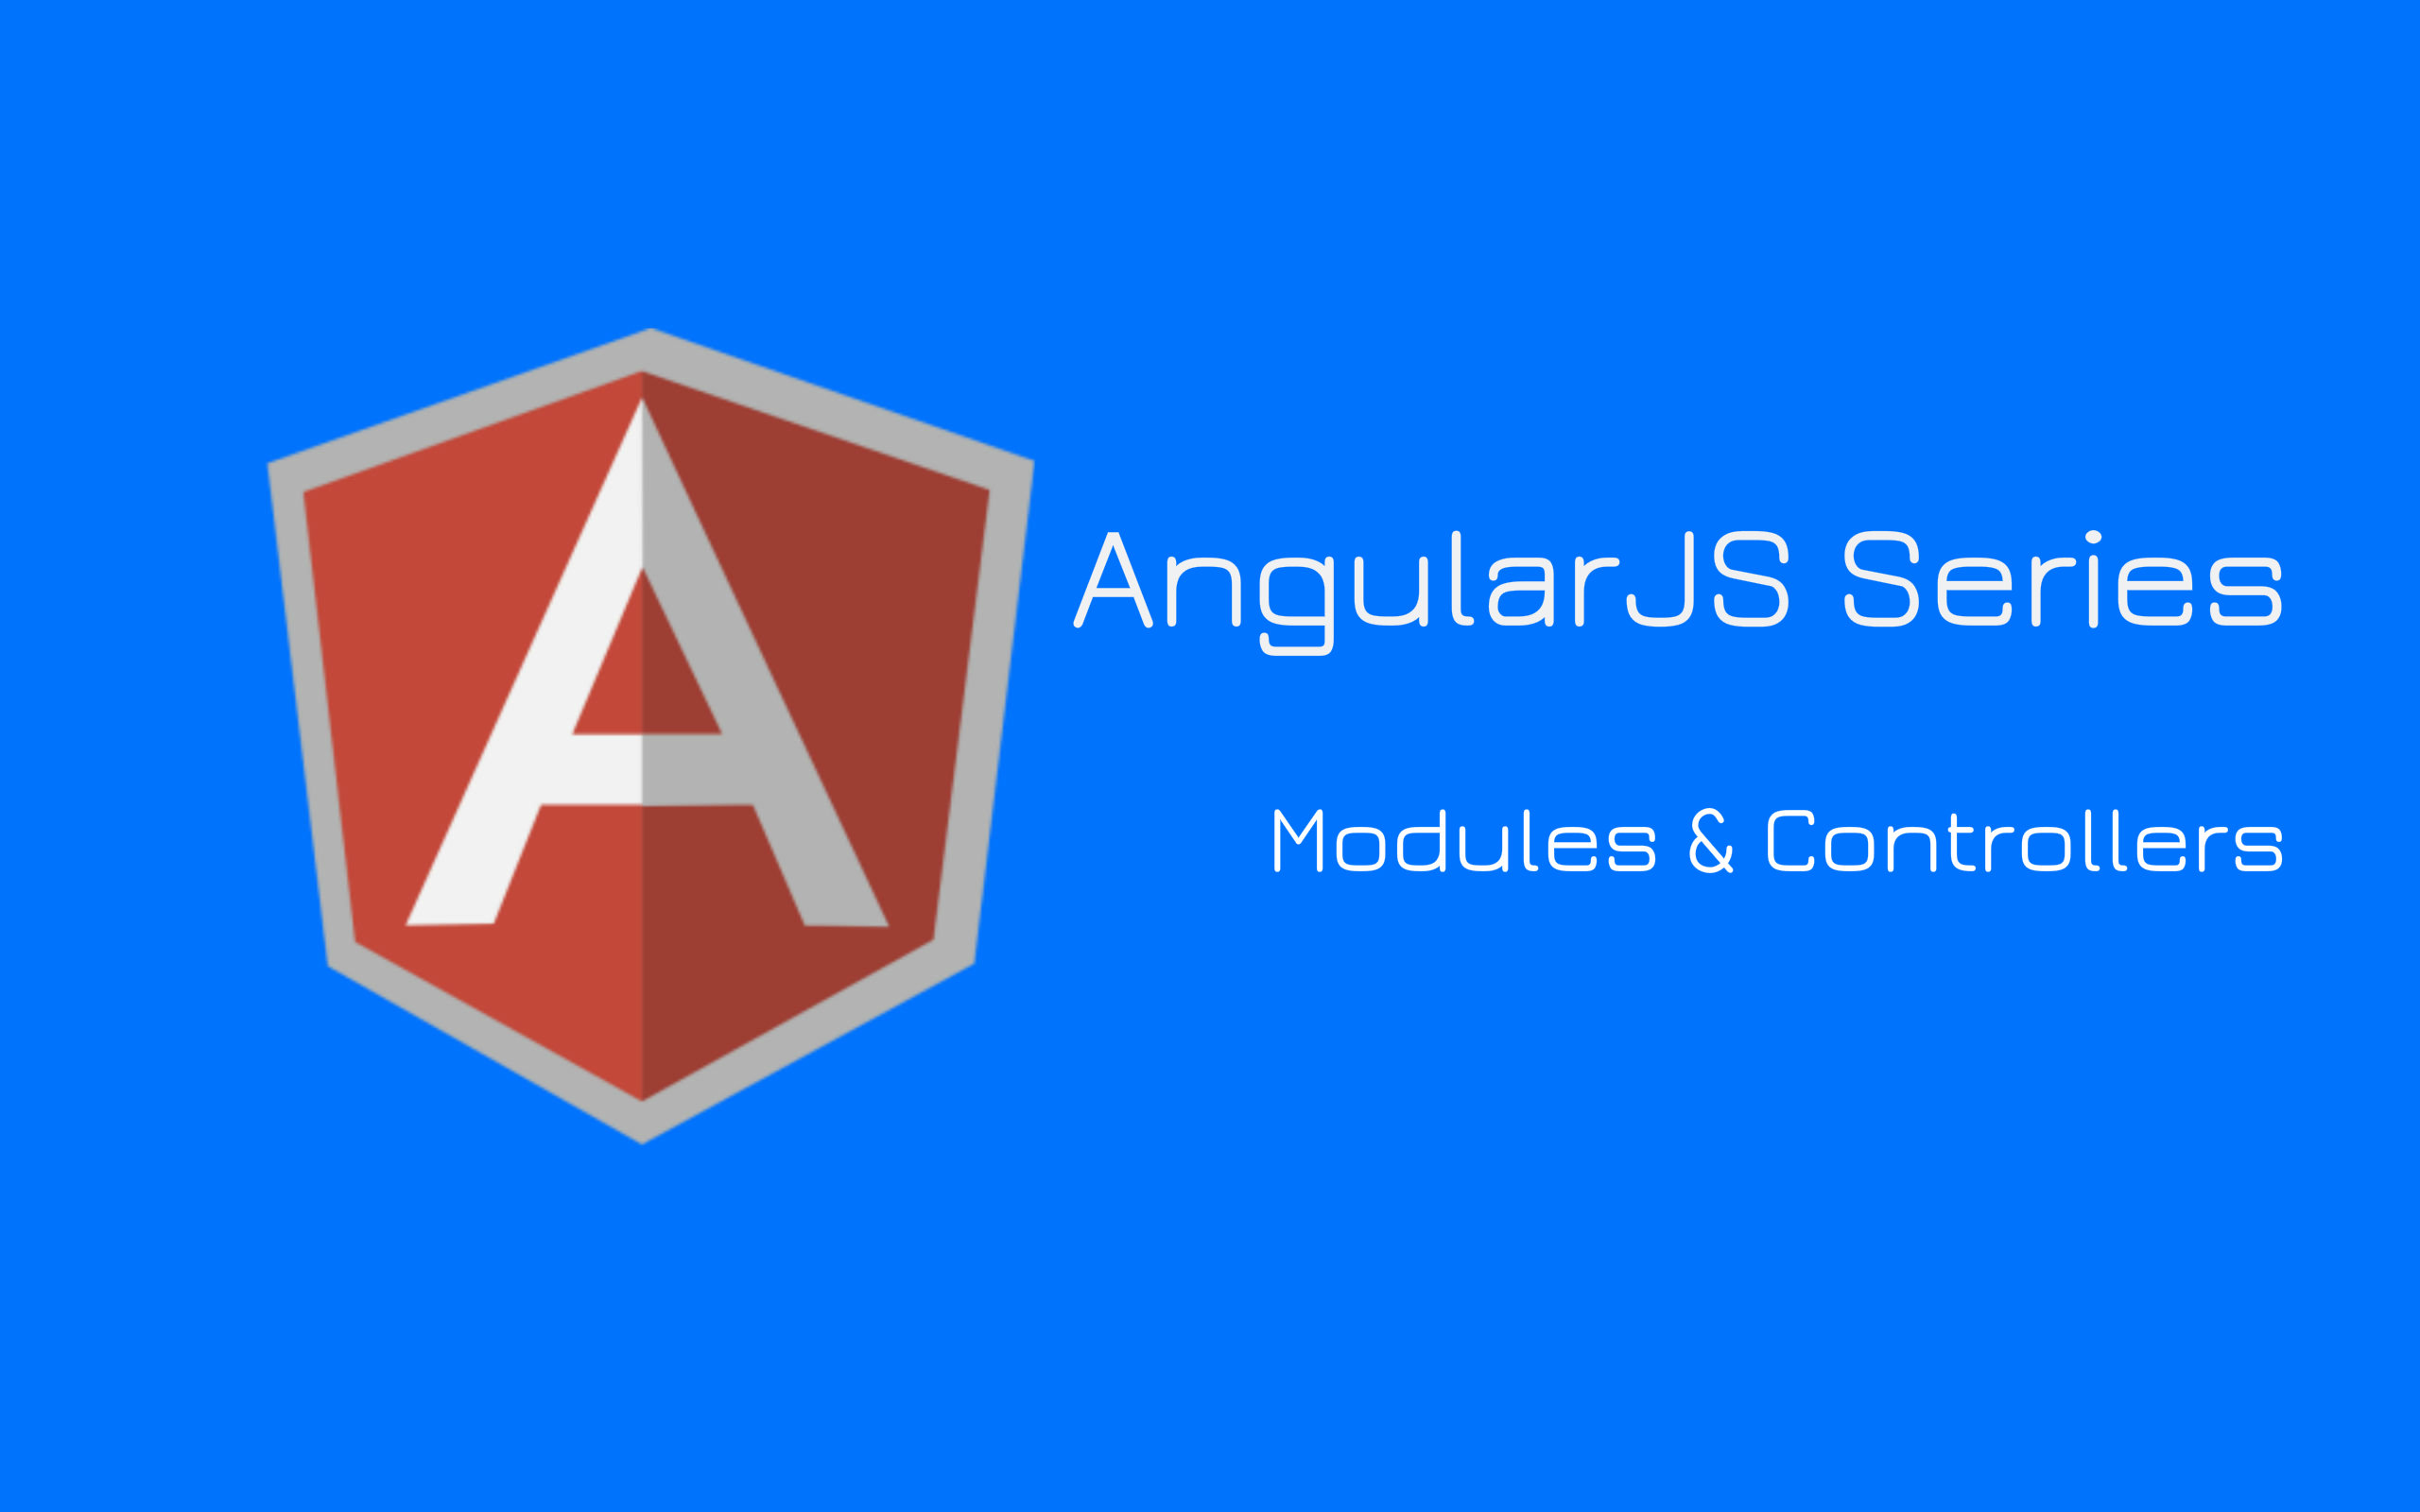 Modules & Controllers in AngularJs